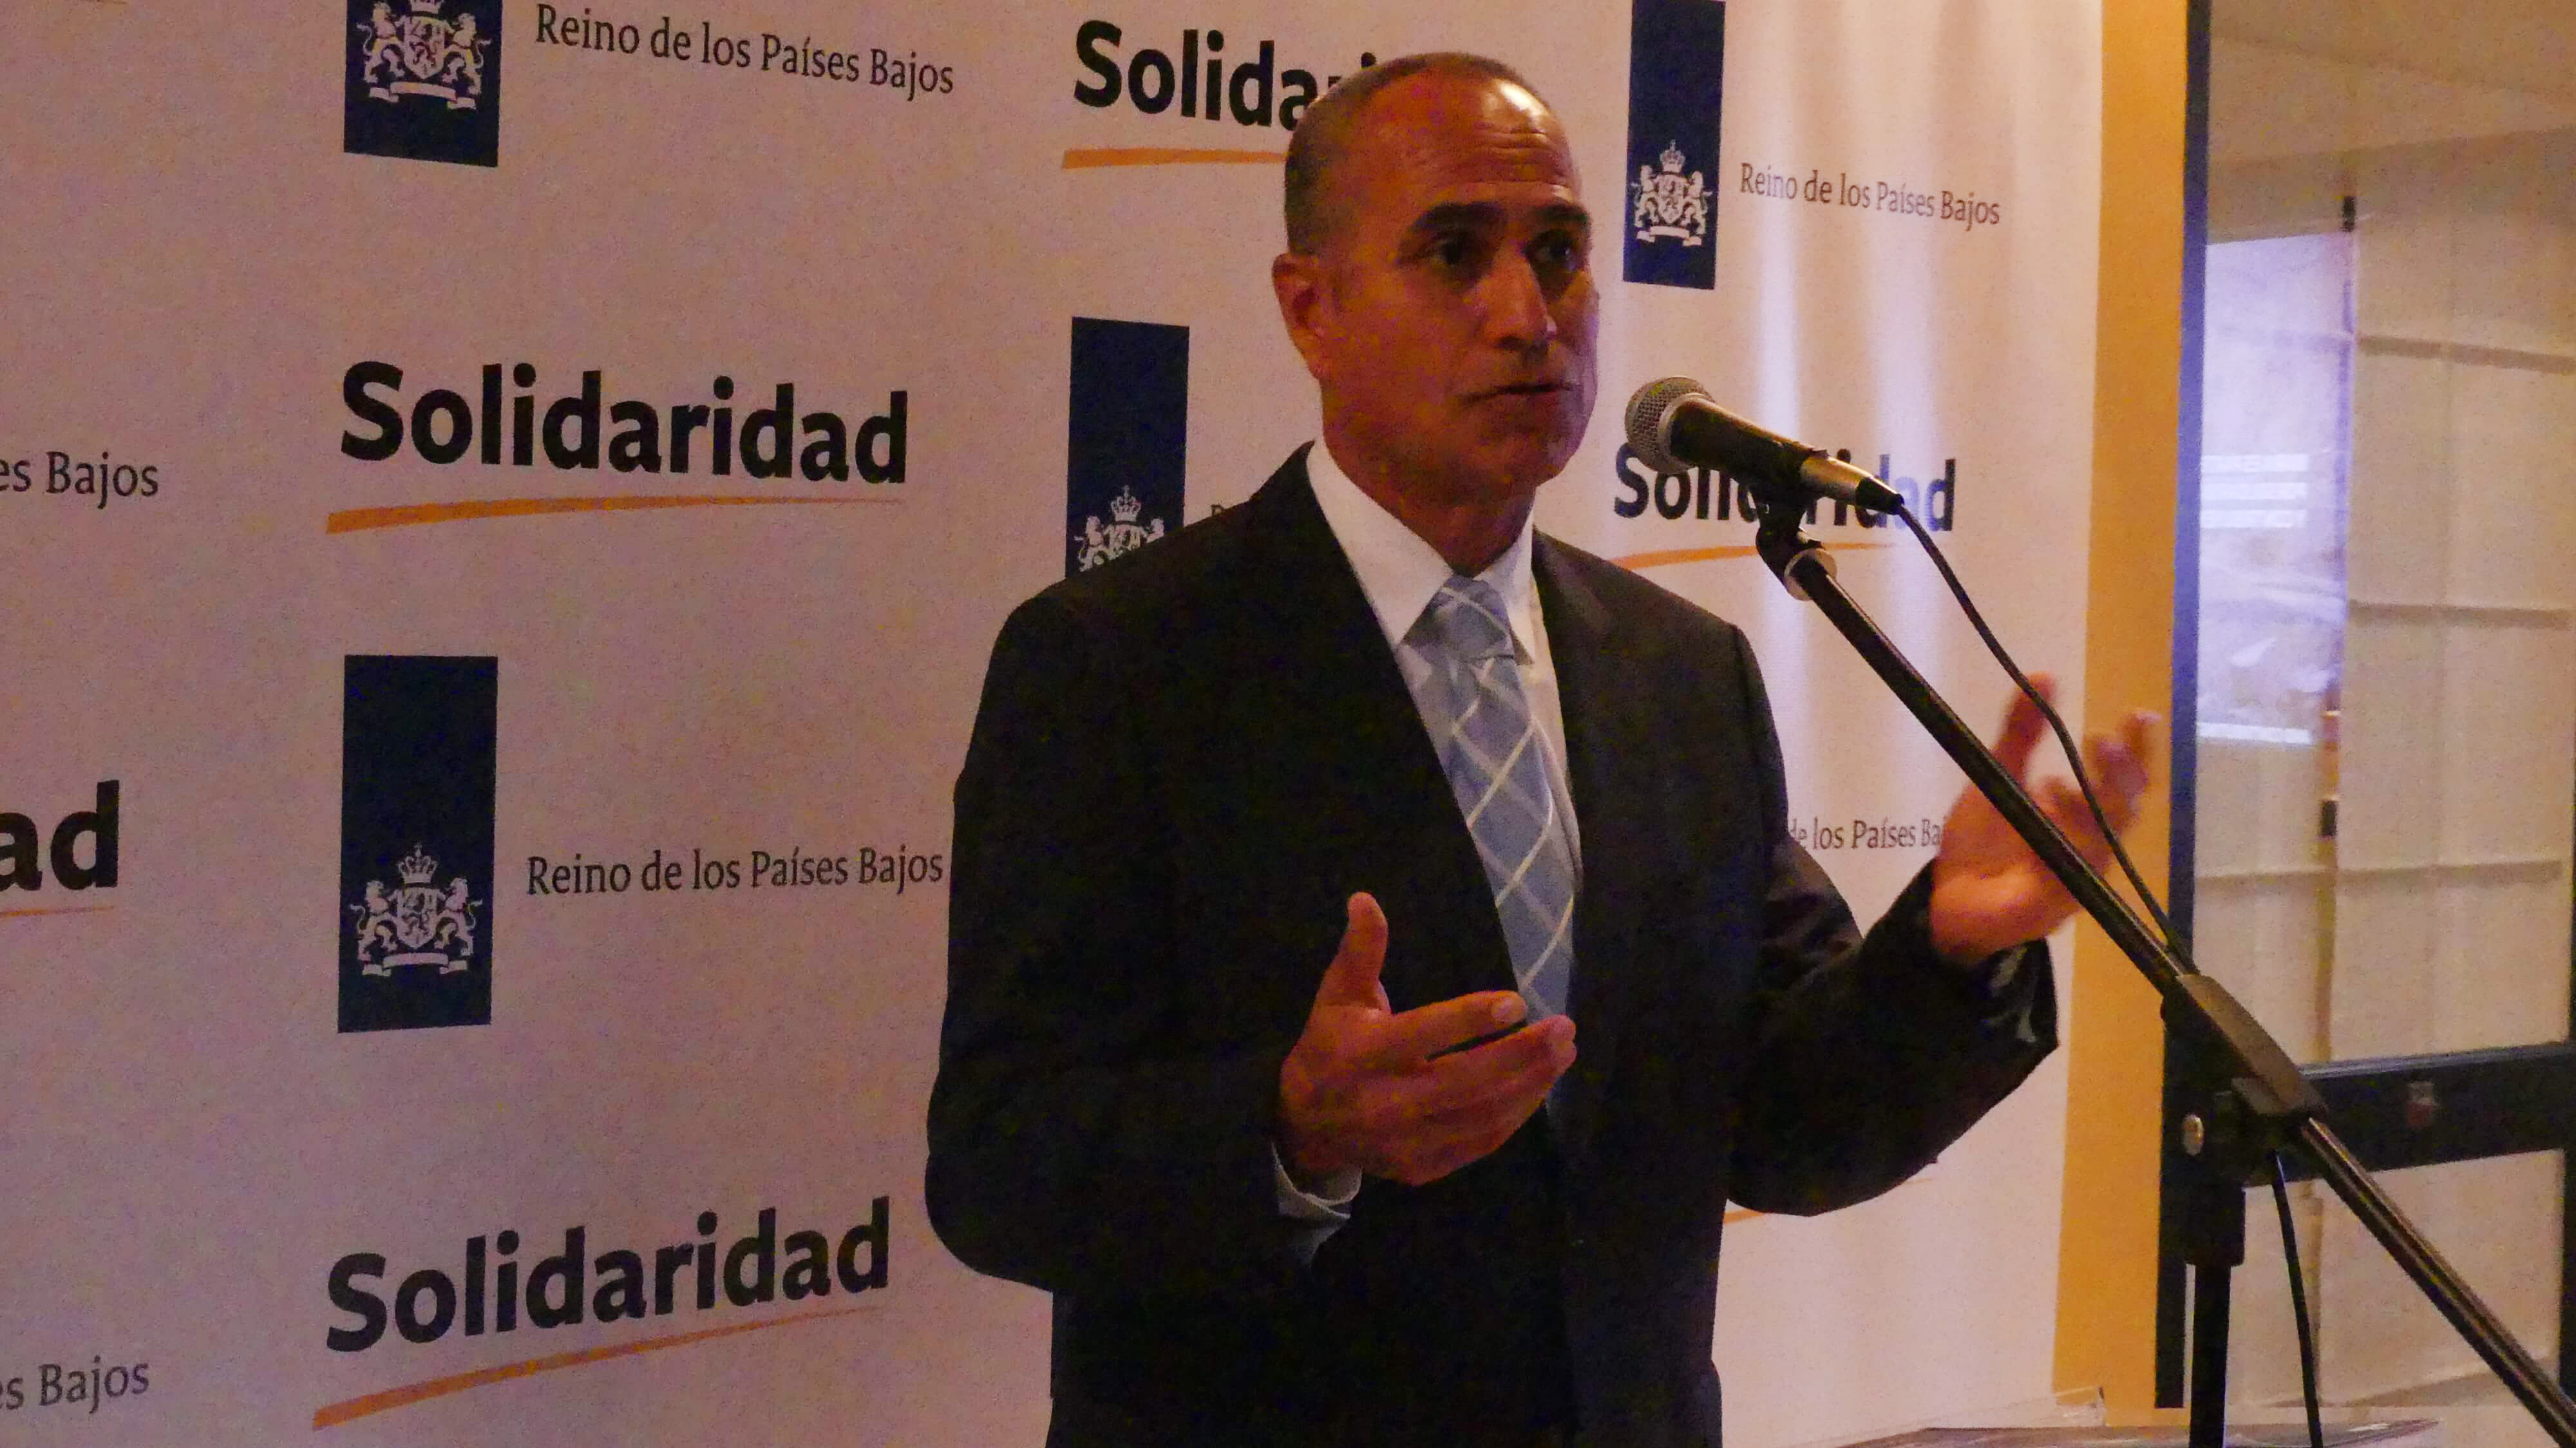 PERU | The Netherlands and Solidaridad presented PIM as an initiative towards responsible mining